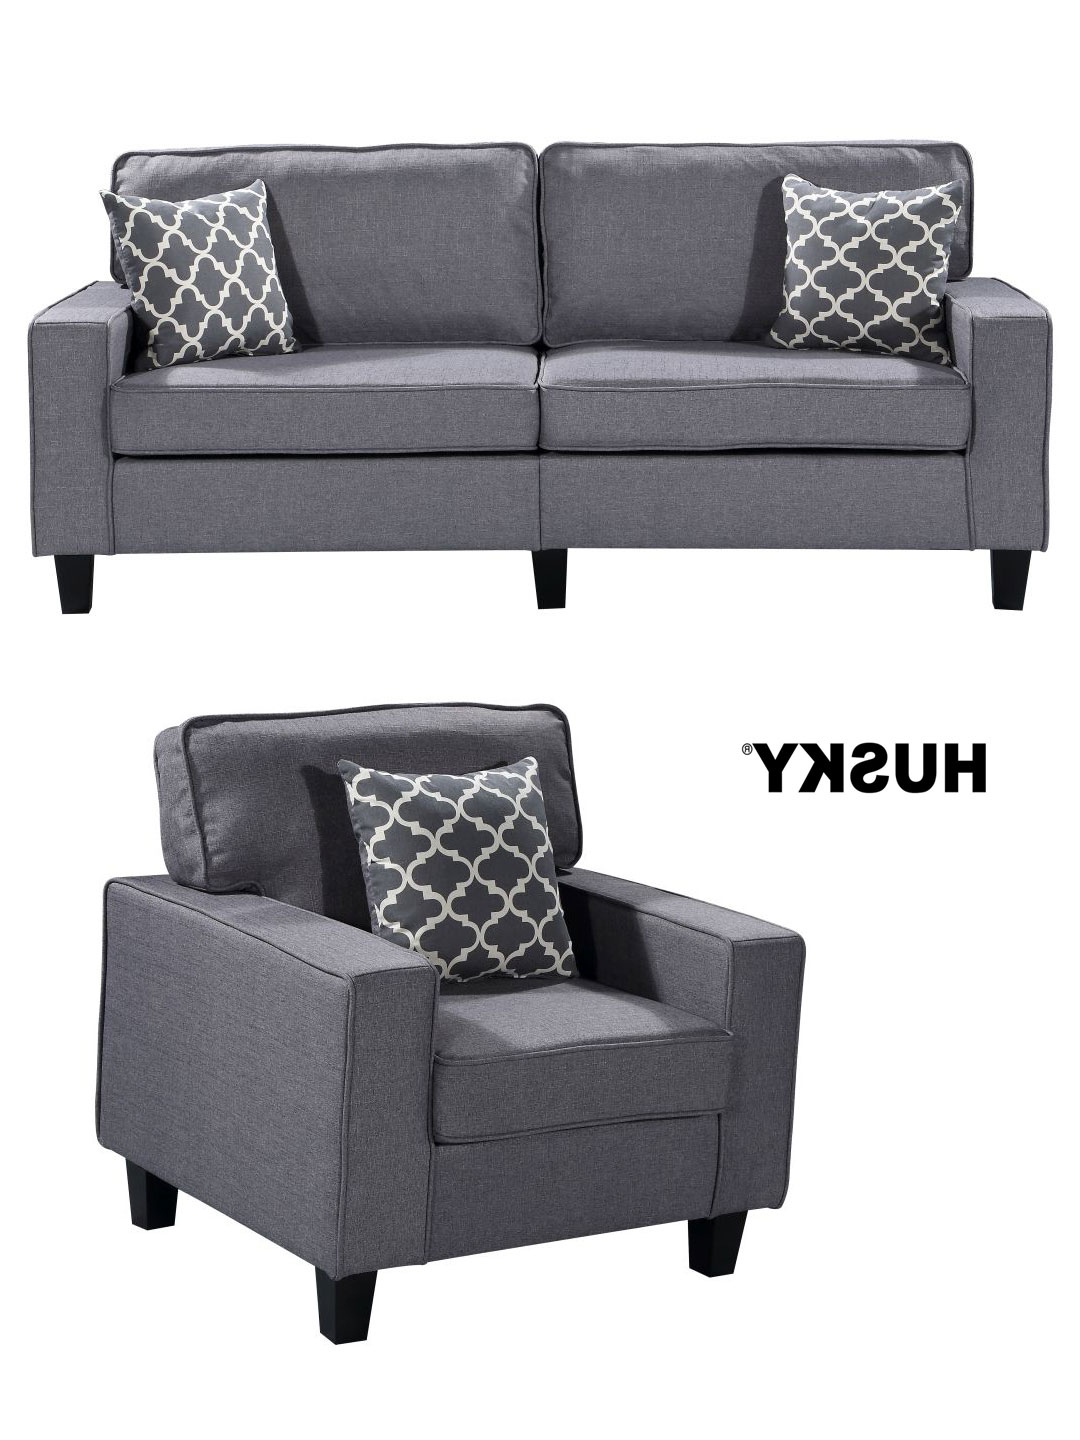 Sofa And Chair Set For Best And Newest Zara 2 Pc Sofa And Chair Set – Gray – Husky® Furniture And Mattresses (View 11 of 20)